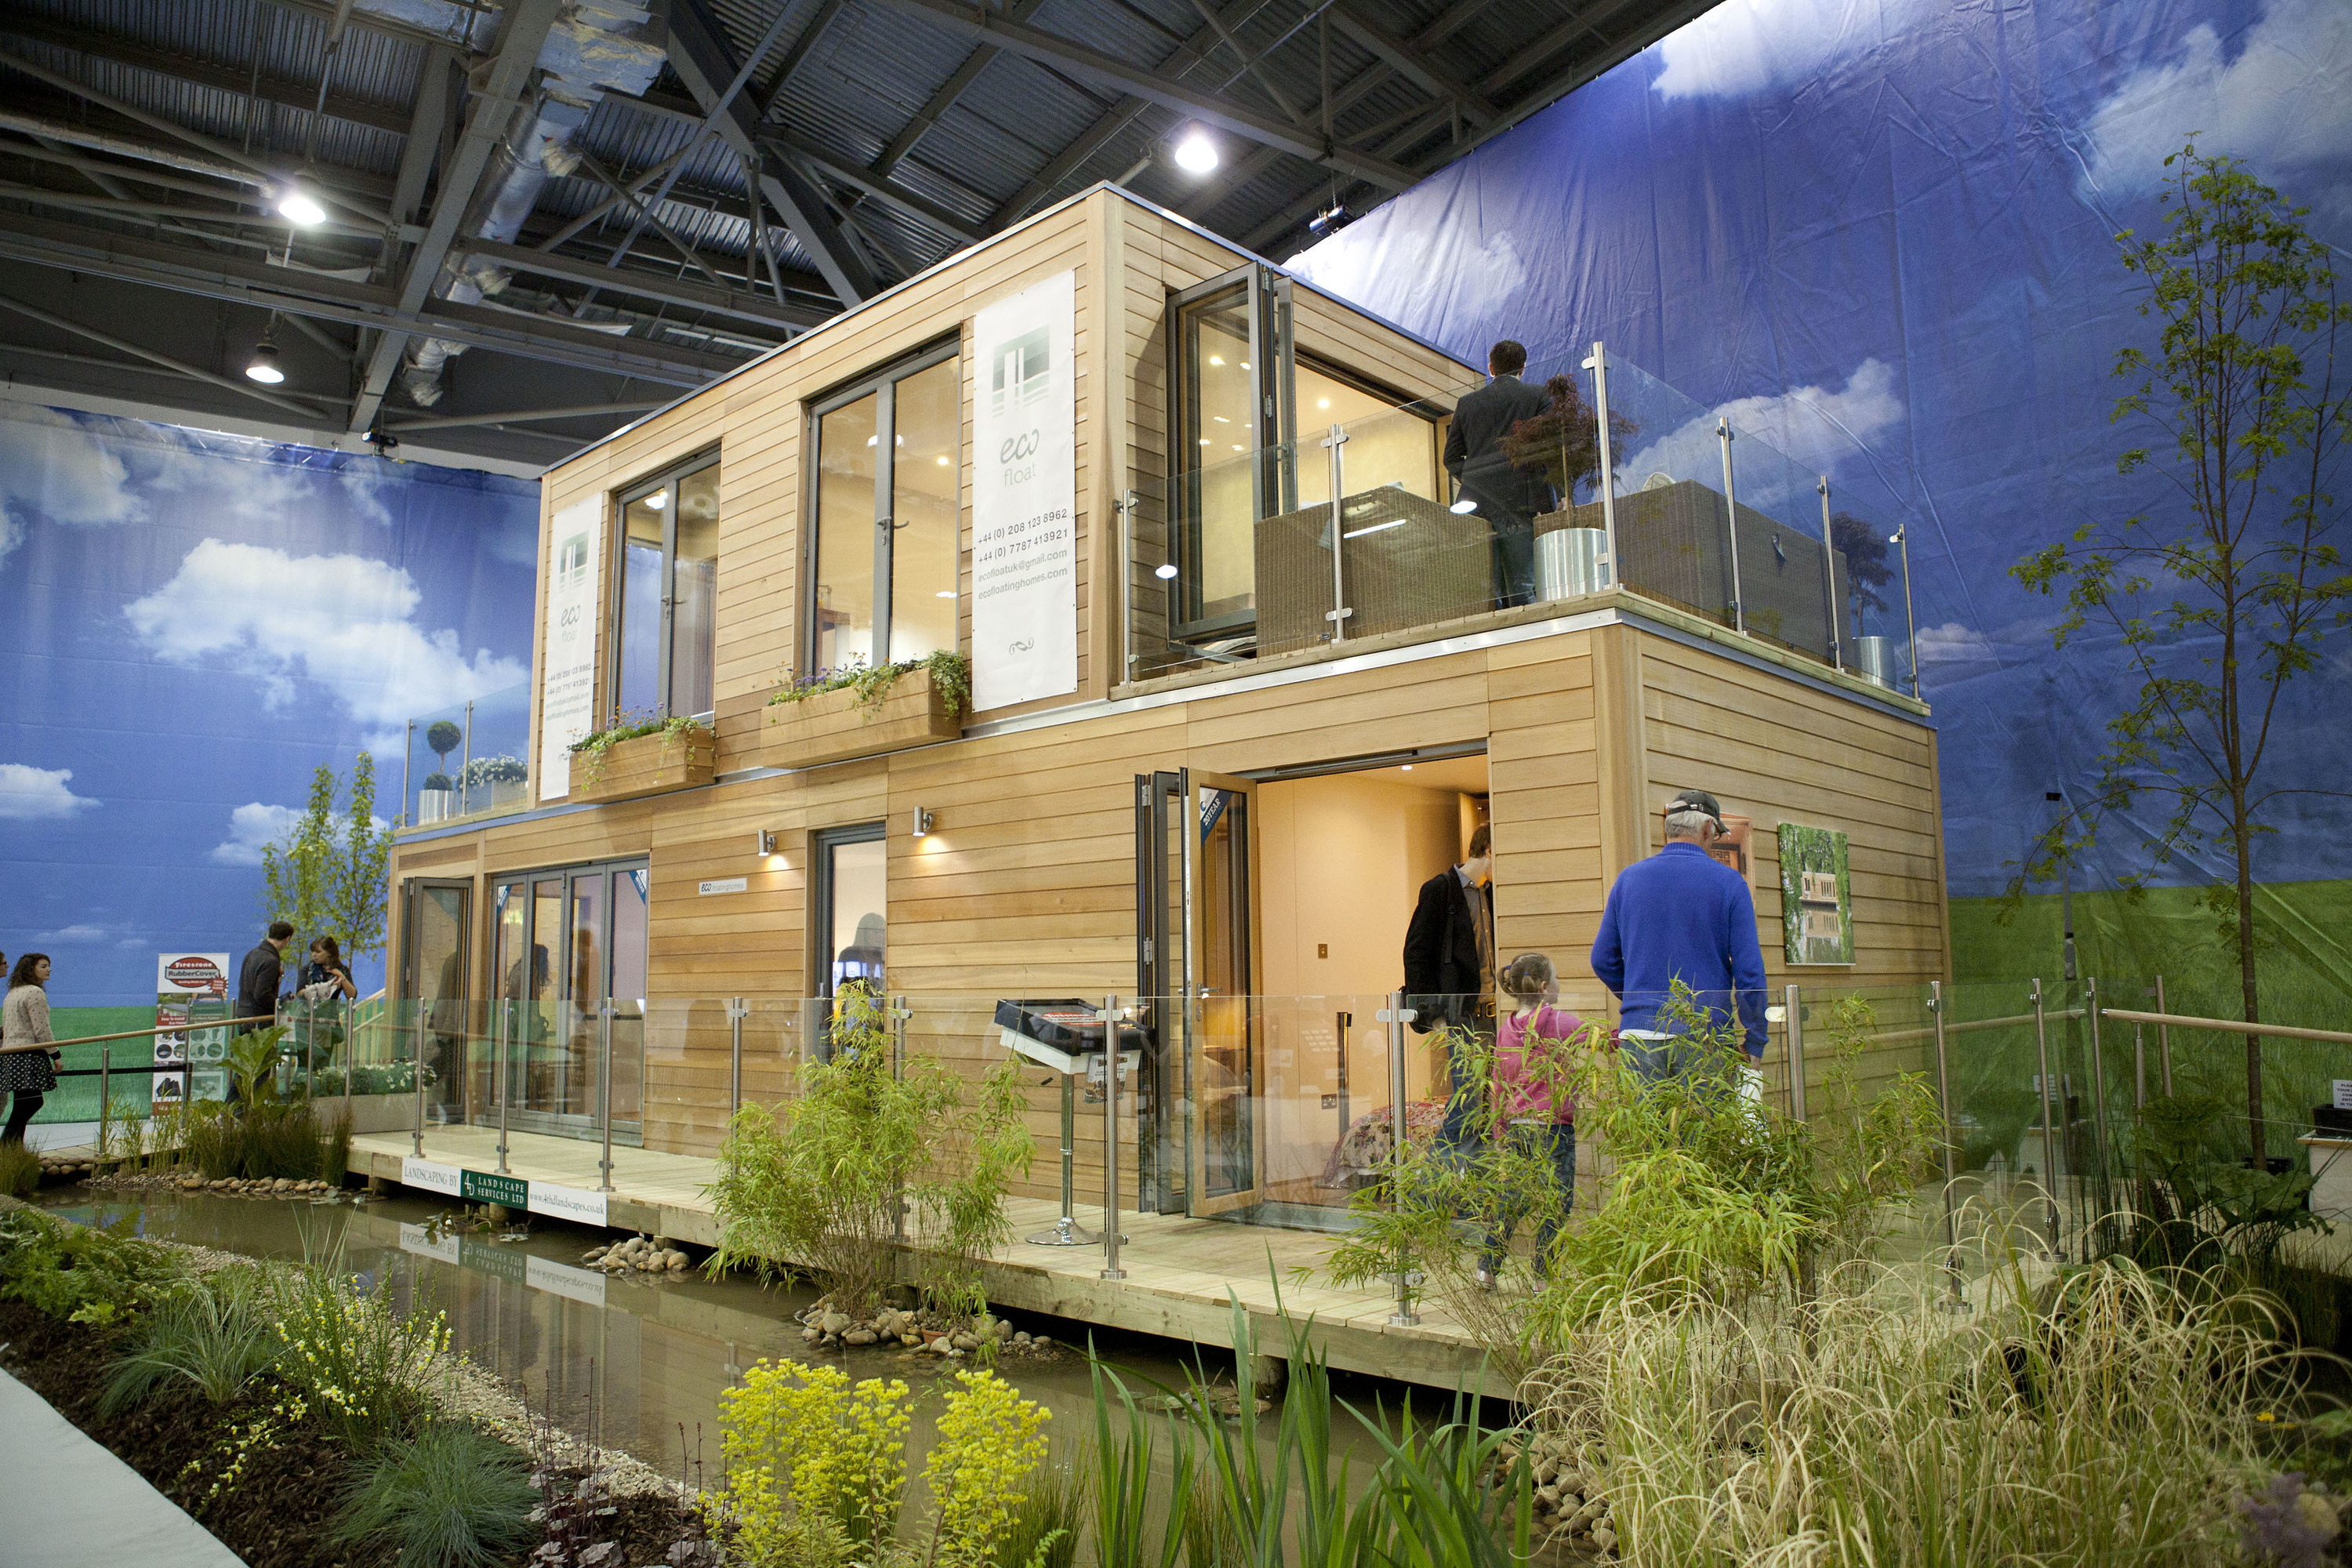 Grand designs live things to do in london for Grand home designs